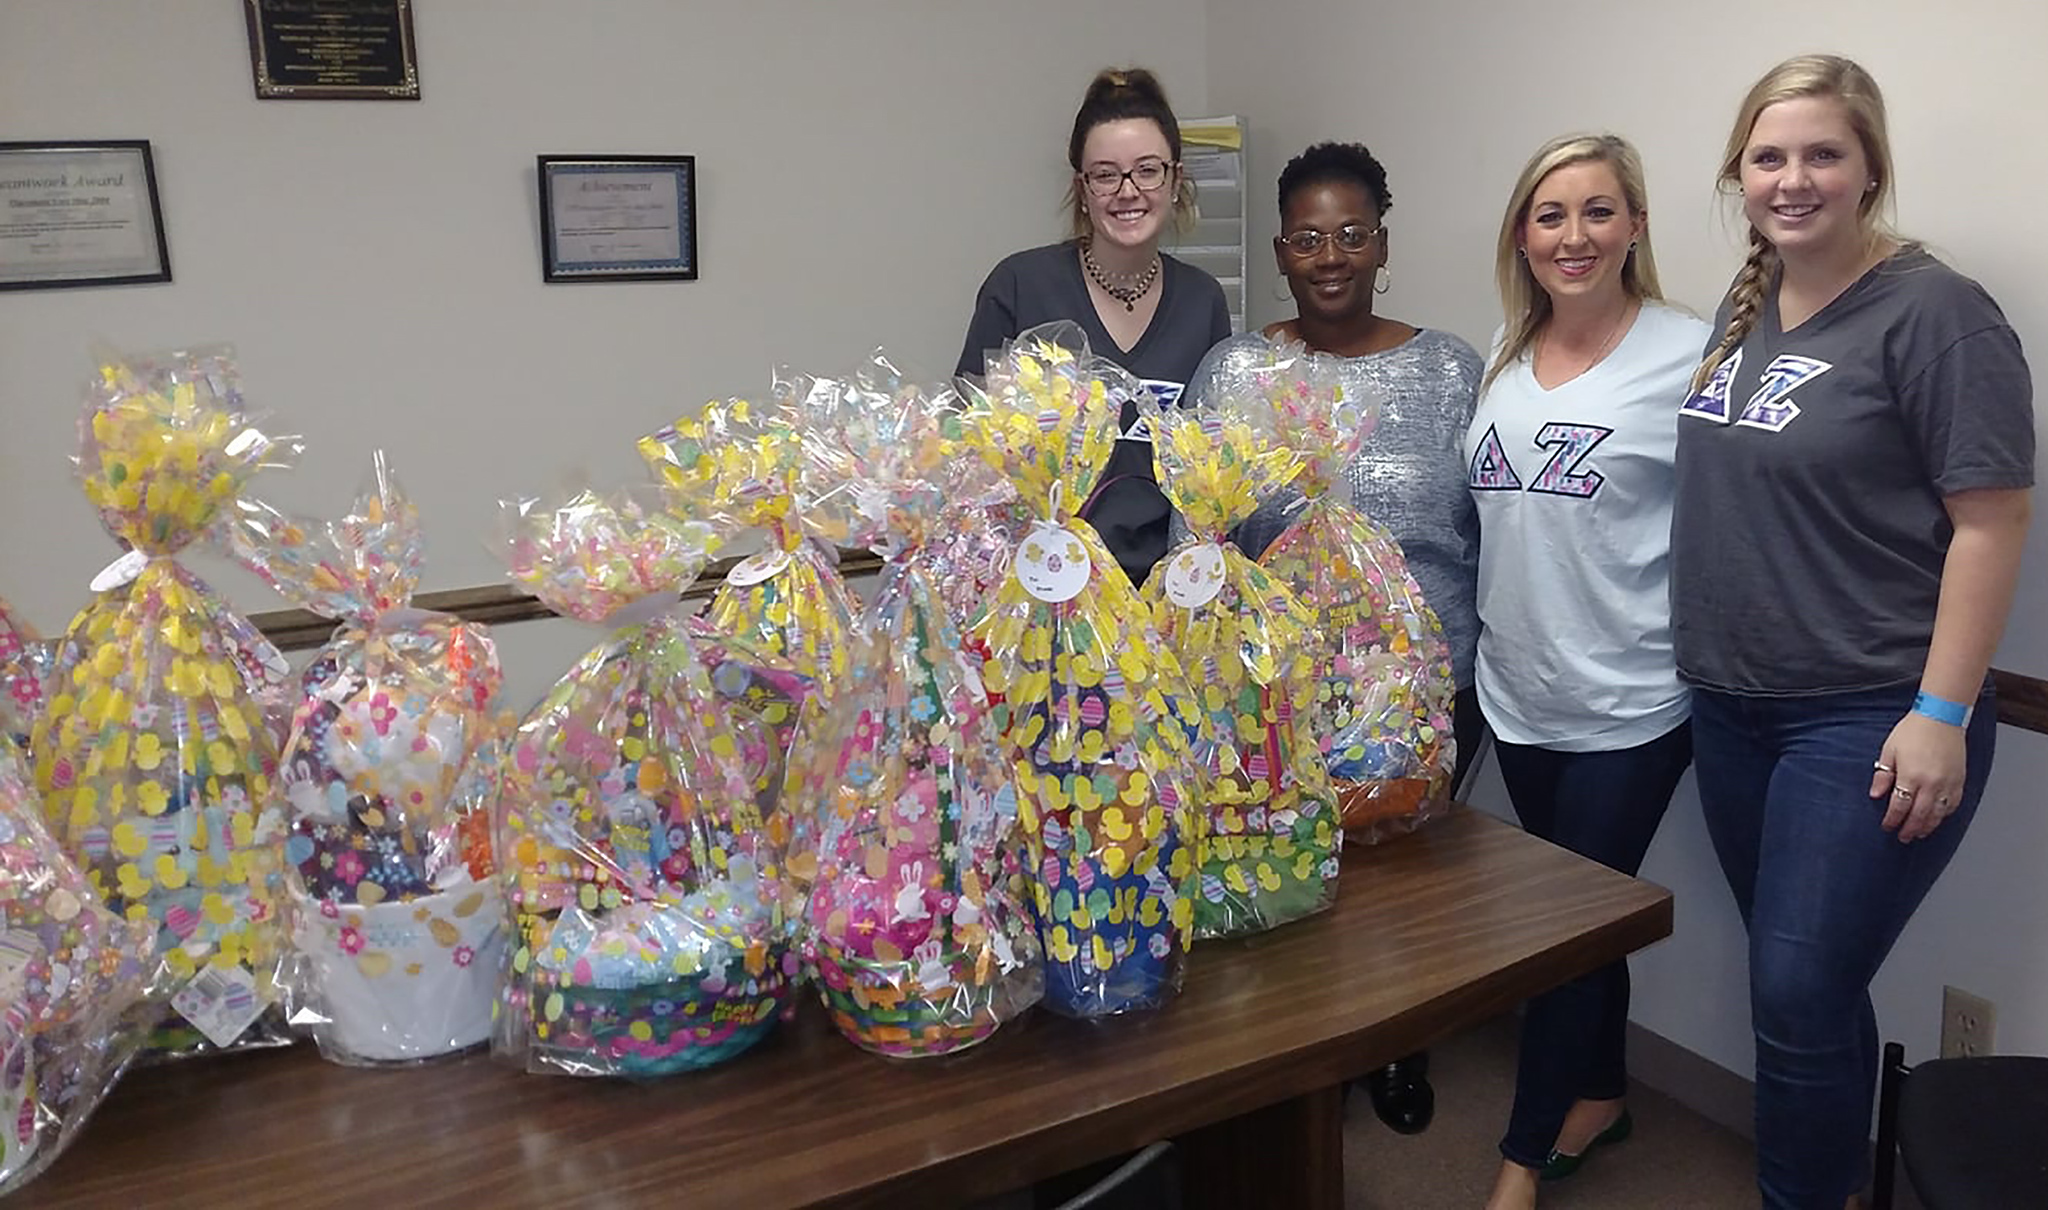 Allison Wilkinson (second from right) and members of her sorority made Easter baskets for local children in need.